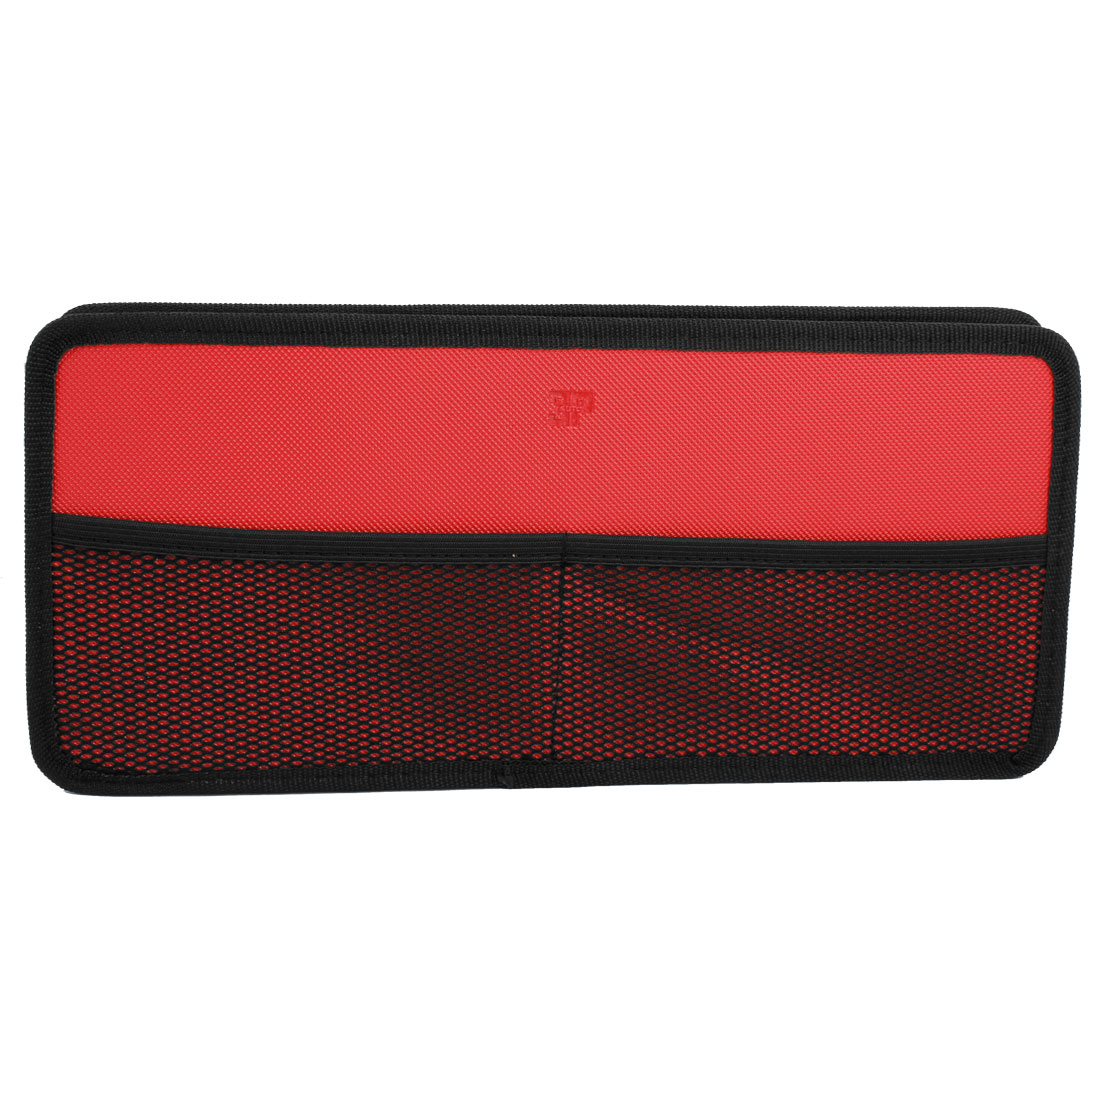 Red Black Nylon Rectangle Zip up VCD DV CD Discs Holder Bag for Auto Car